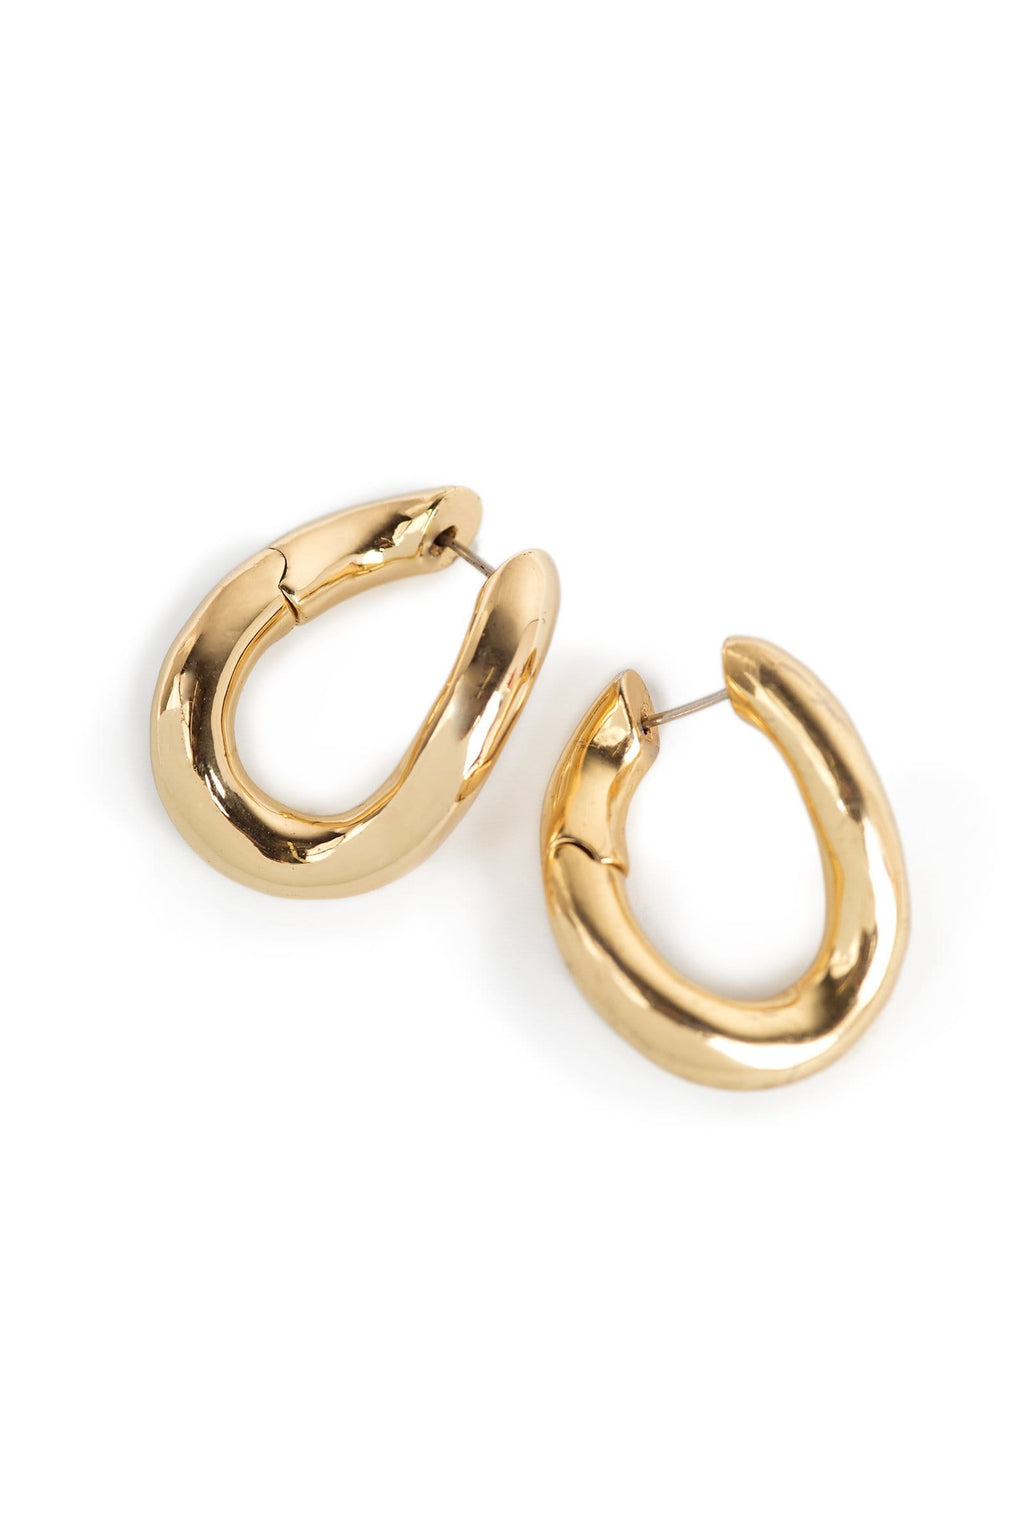 Melted Gold Earrings by J.ING women's accessories